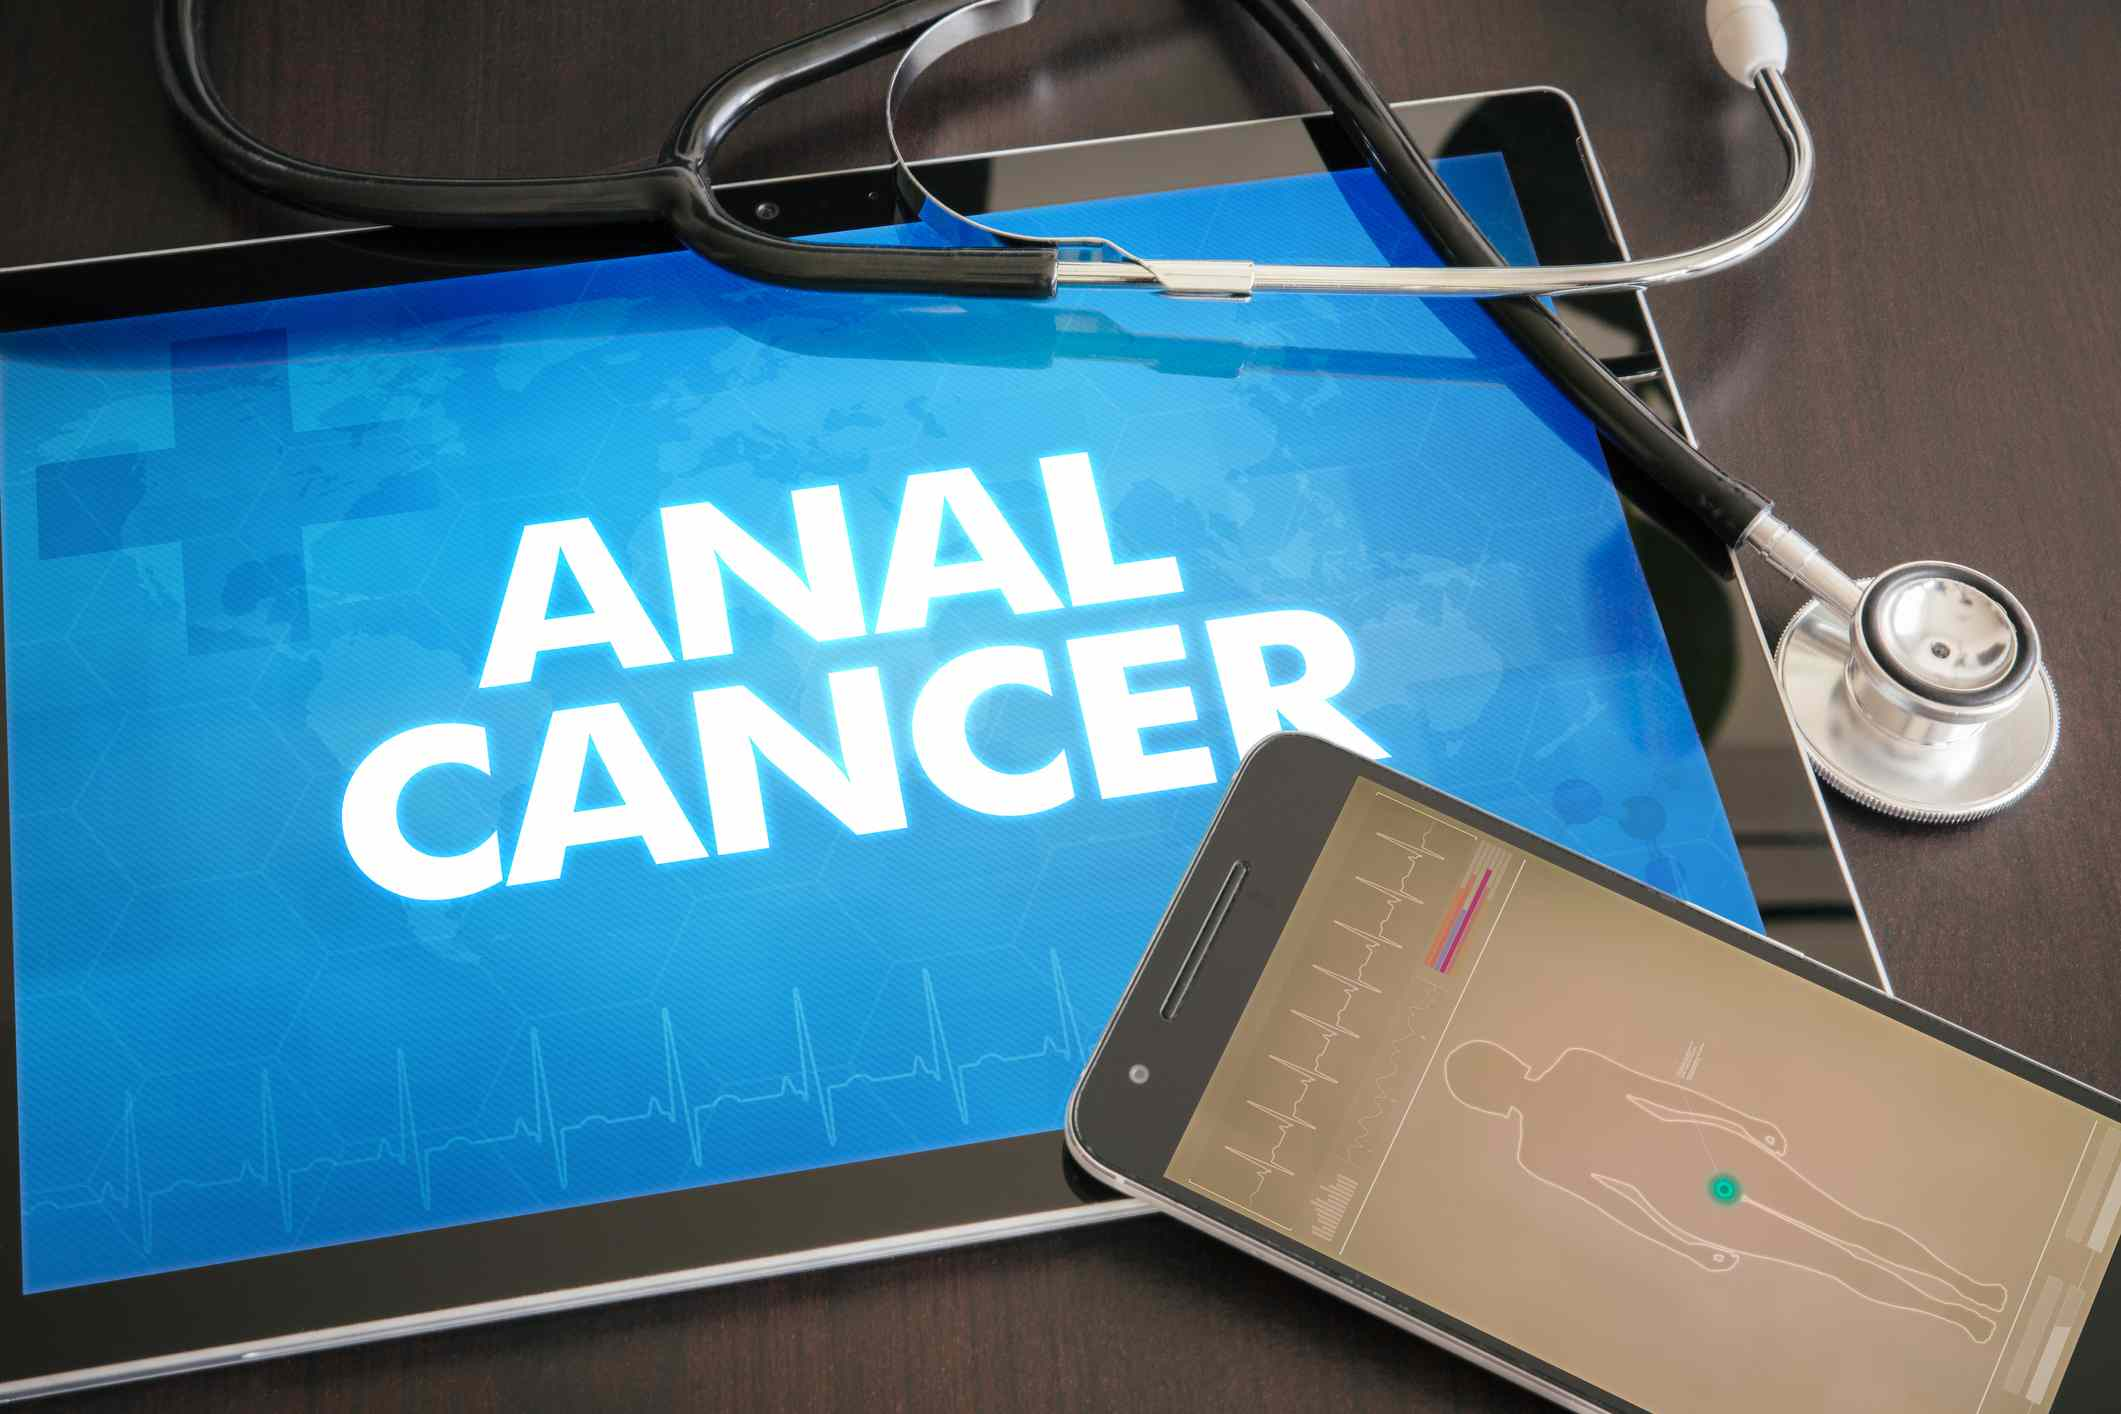 Anal Cancer typed on iPad